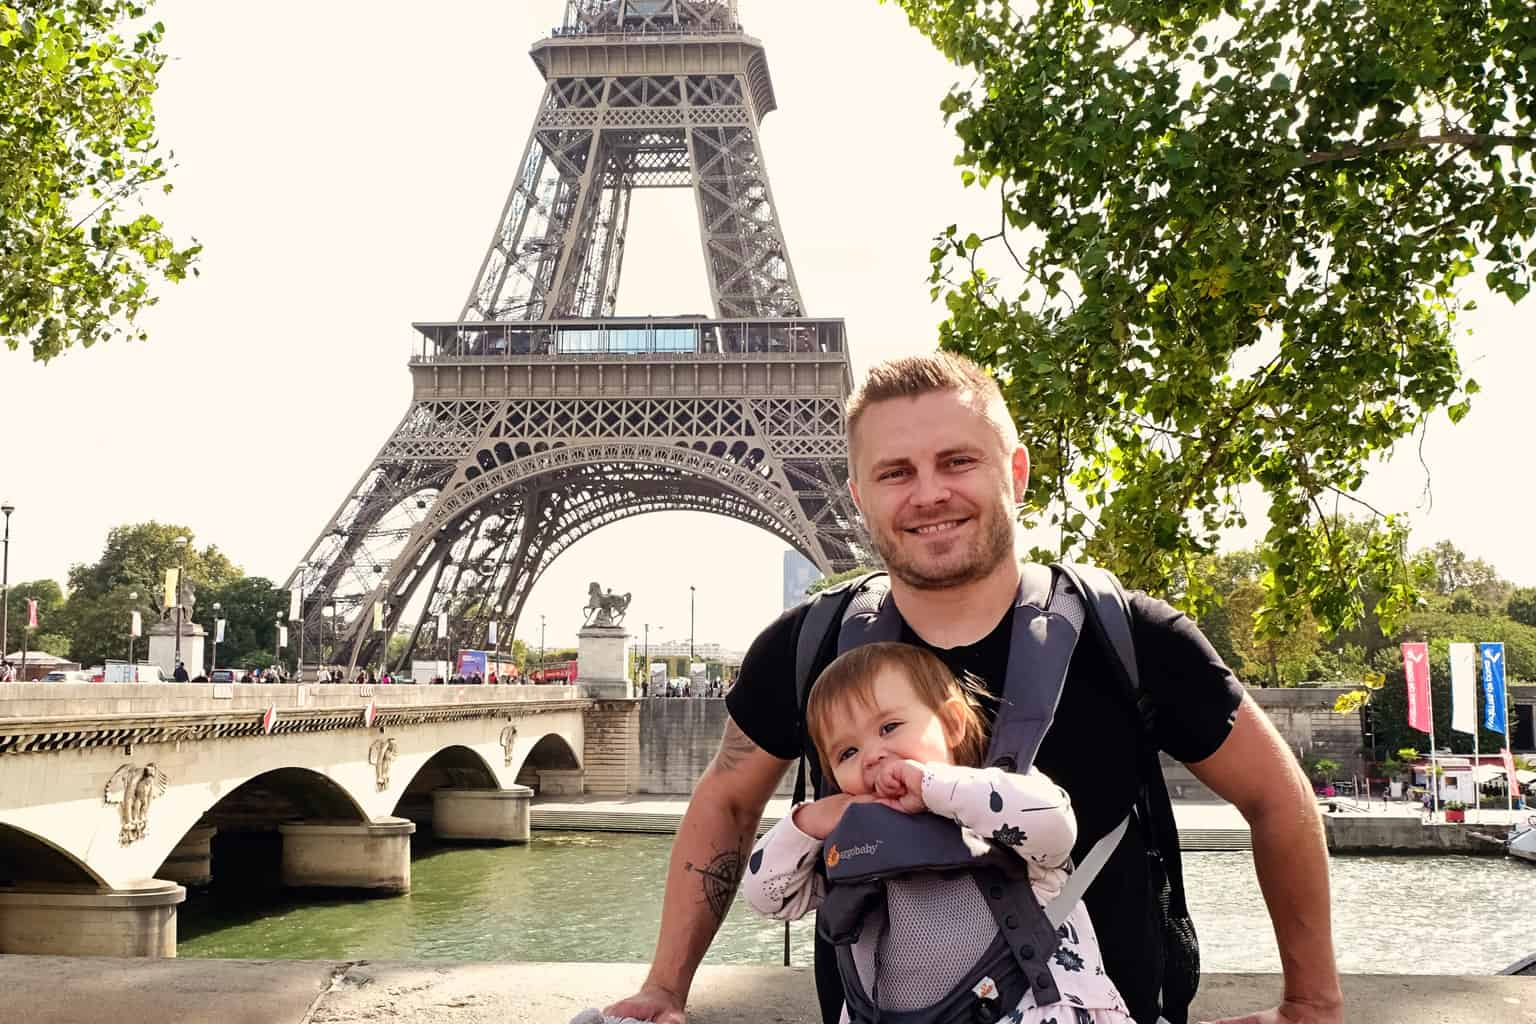 Paris with a Baby at the Eiffel Tower